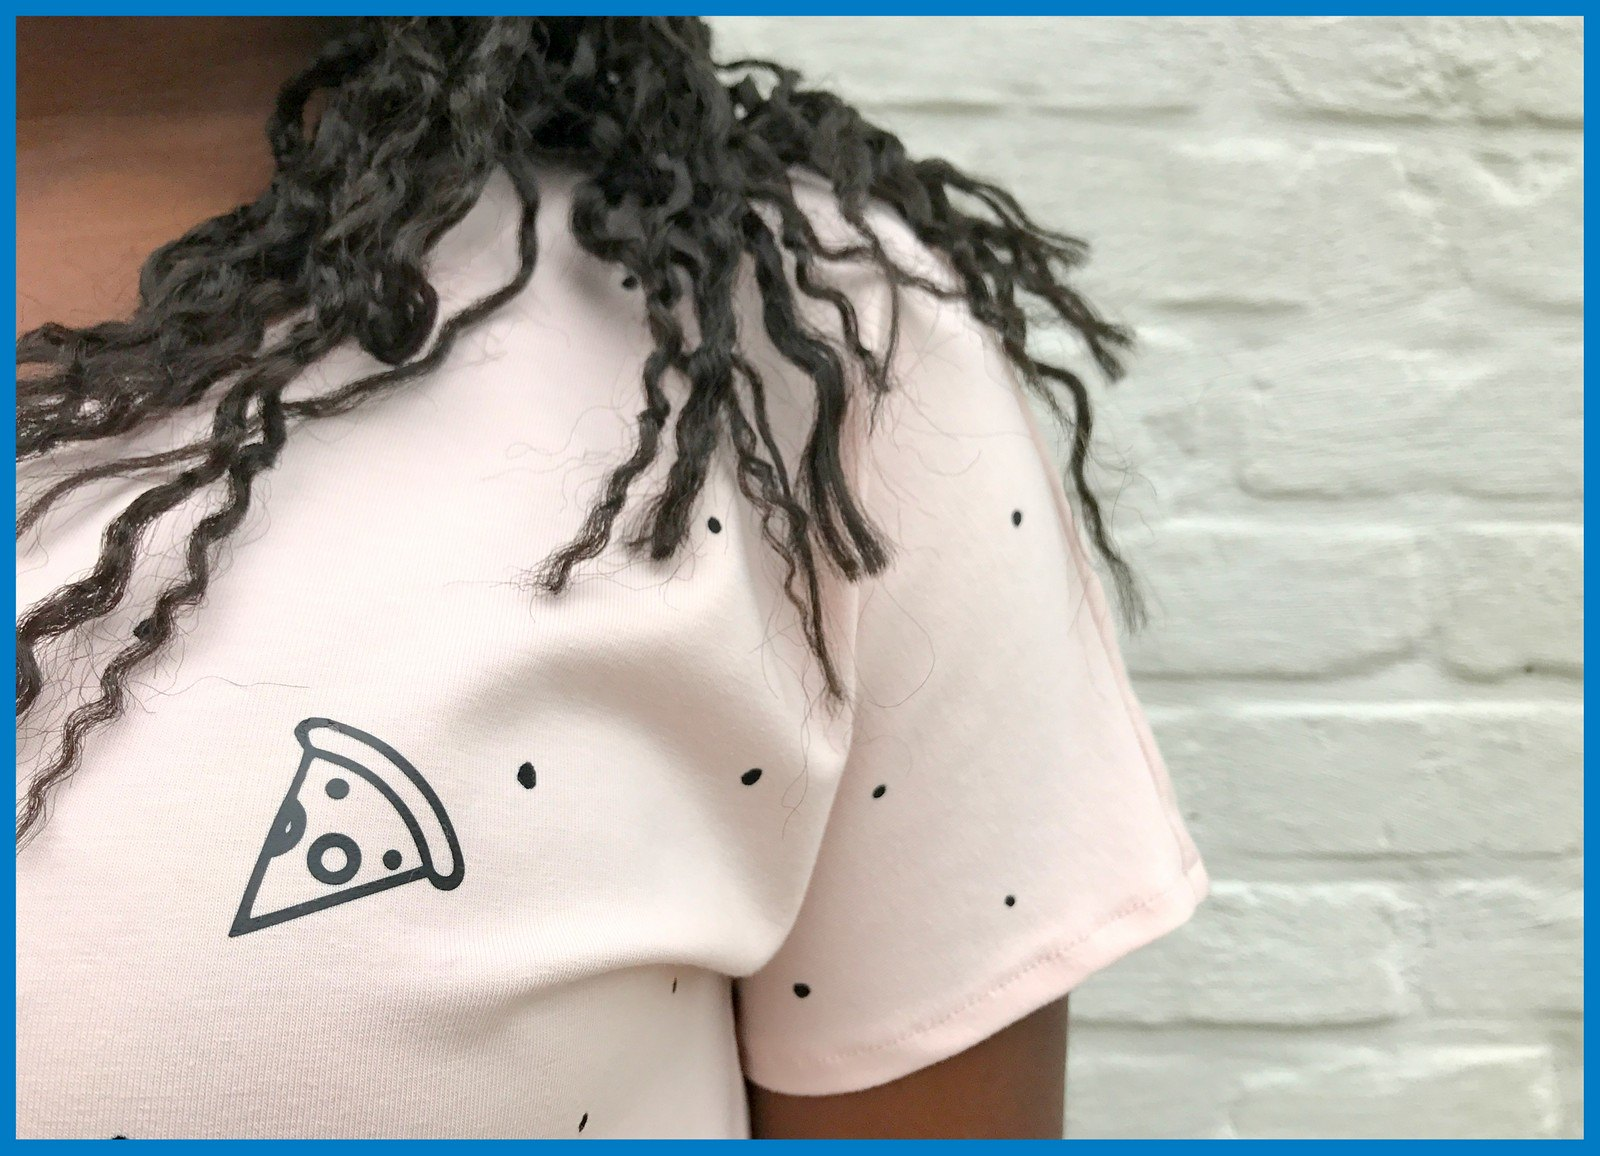 pizza t-shirt (close-up)